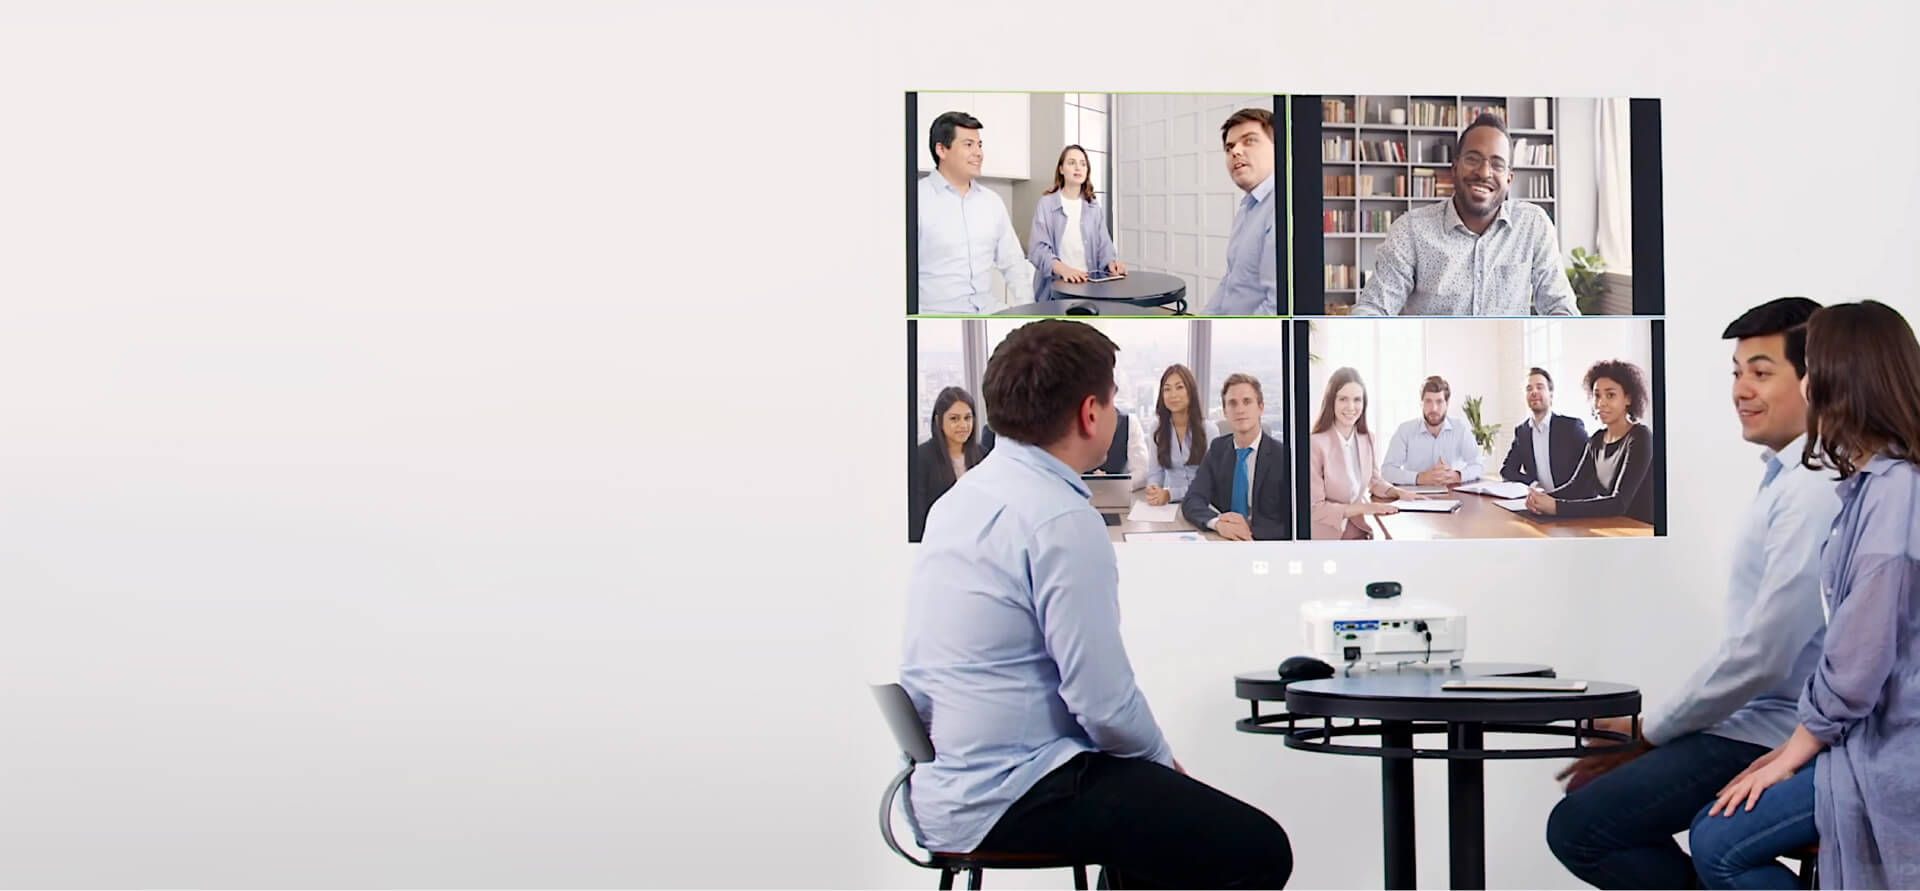 Video conference equipment